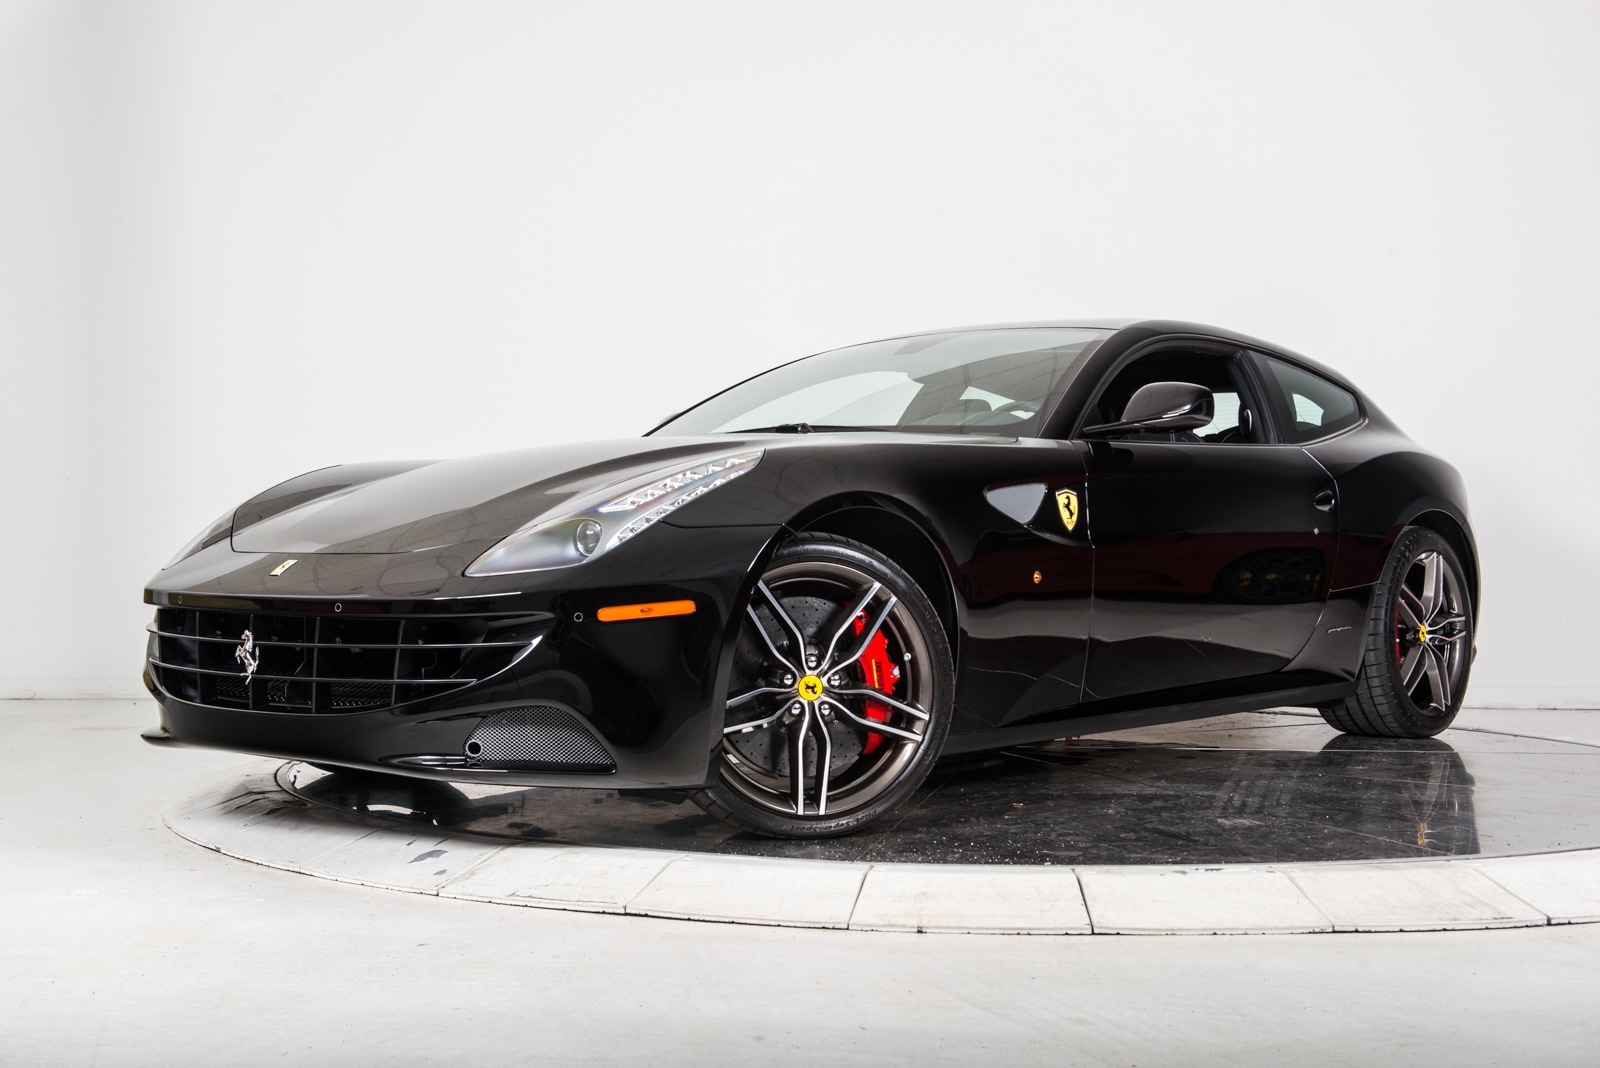 used 2016 ferrari ff for sale | plainview ny near long island